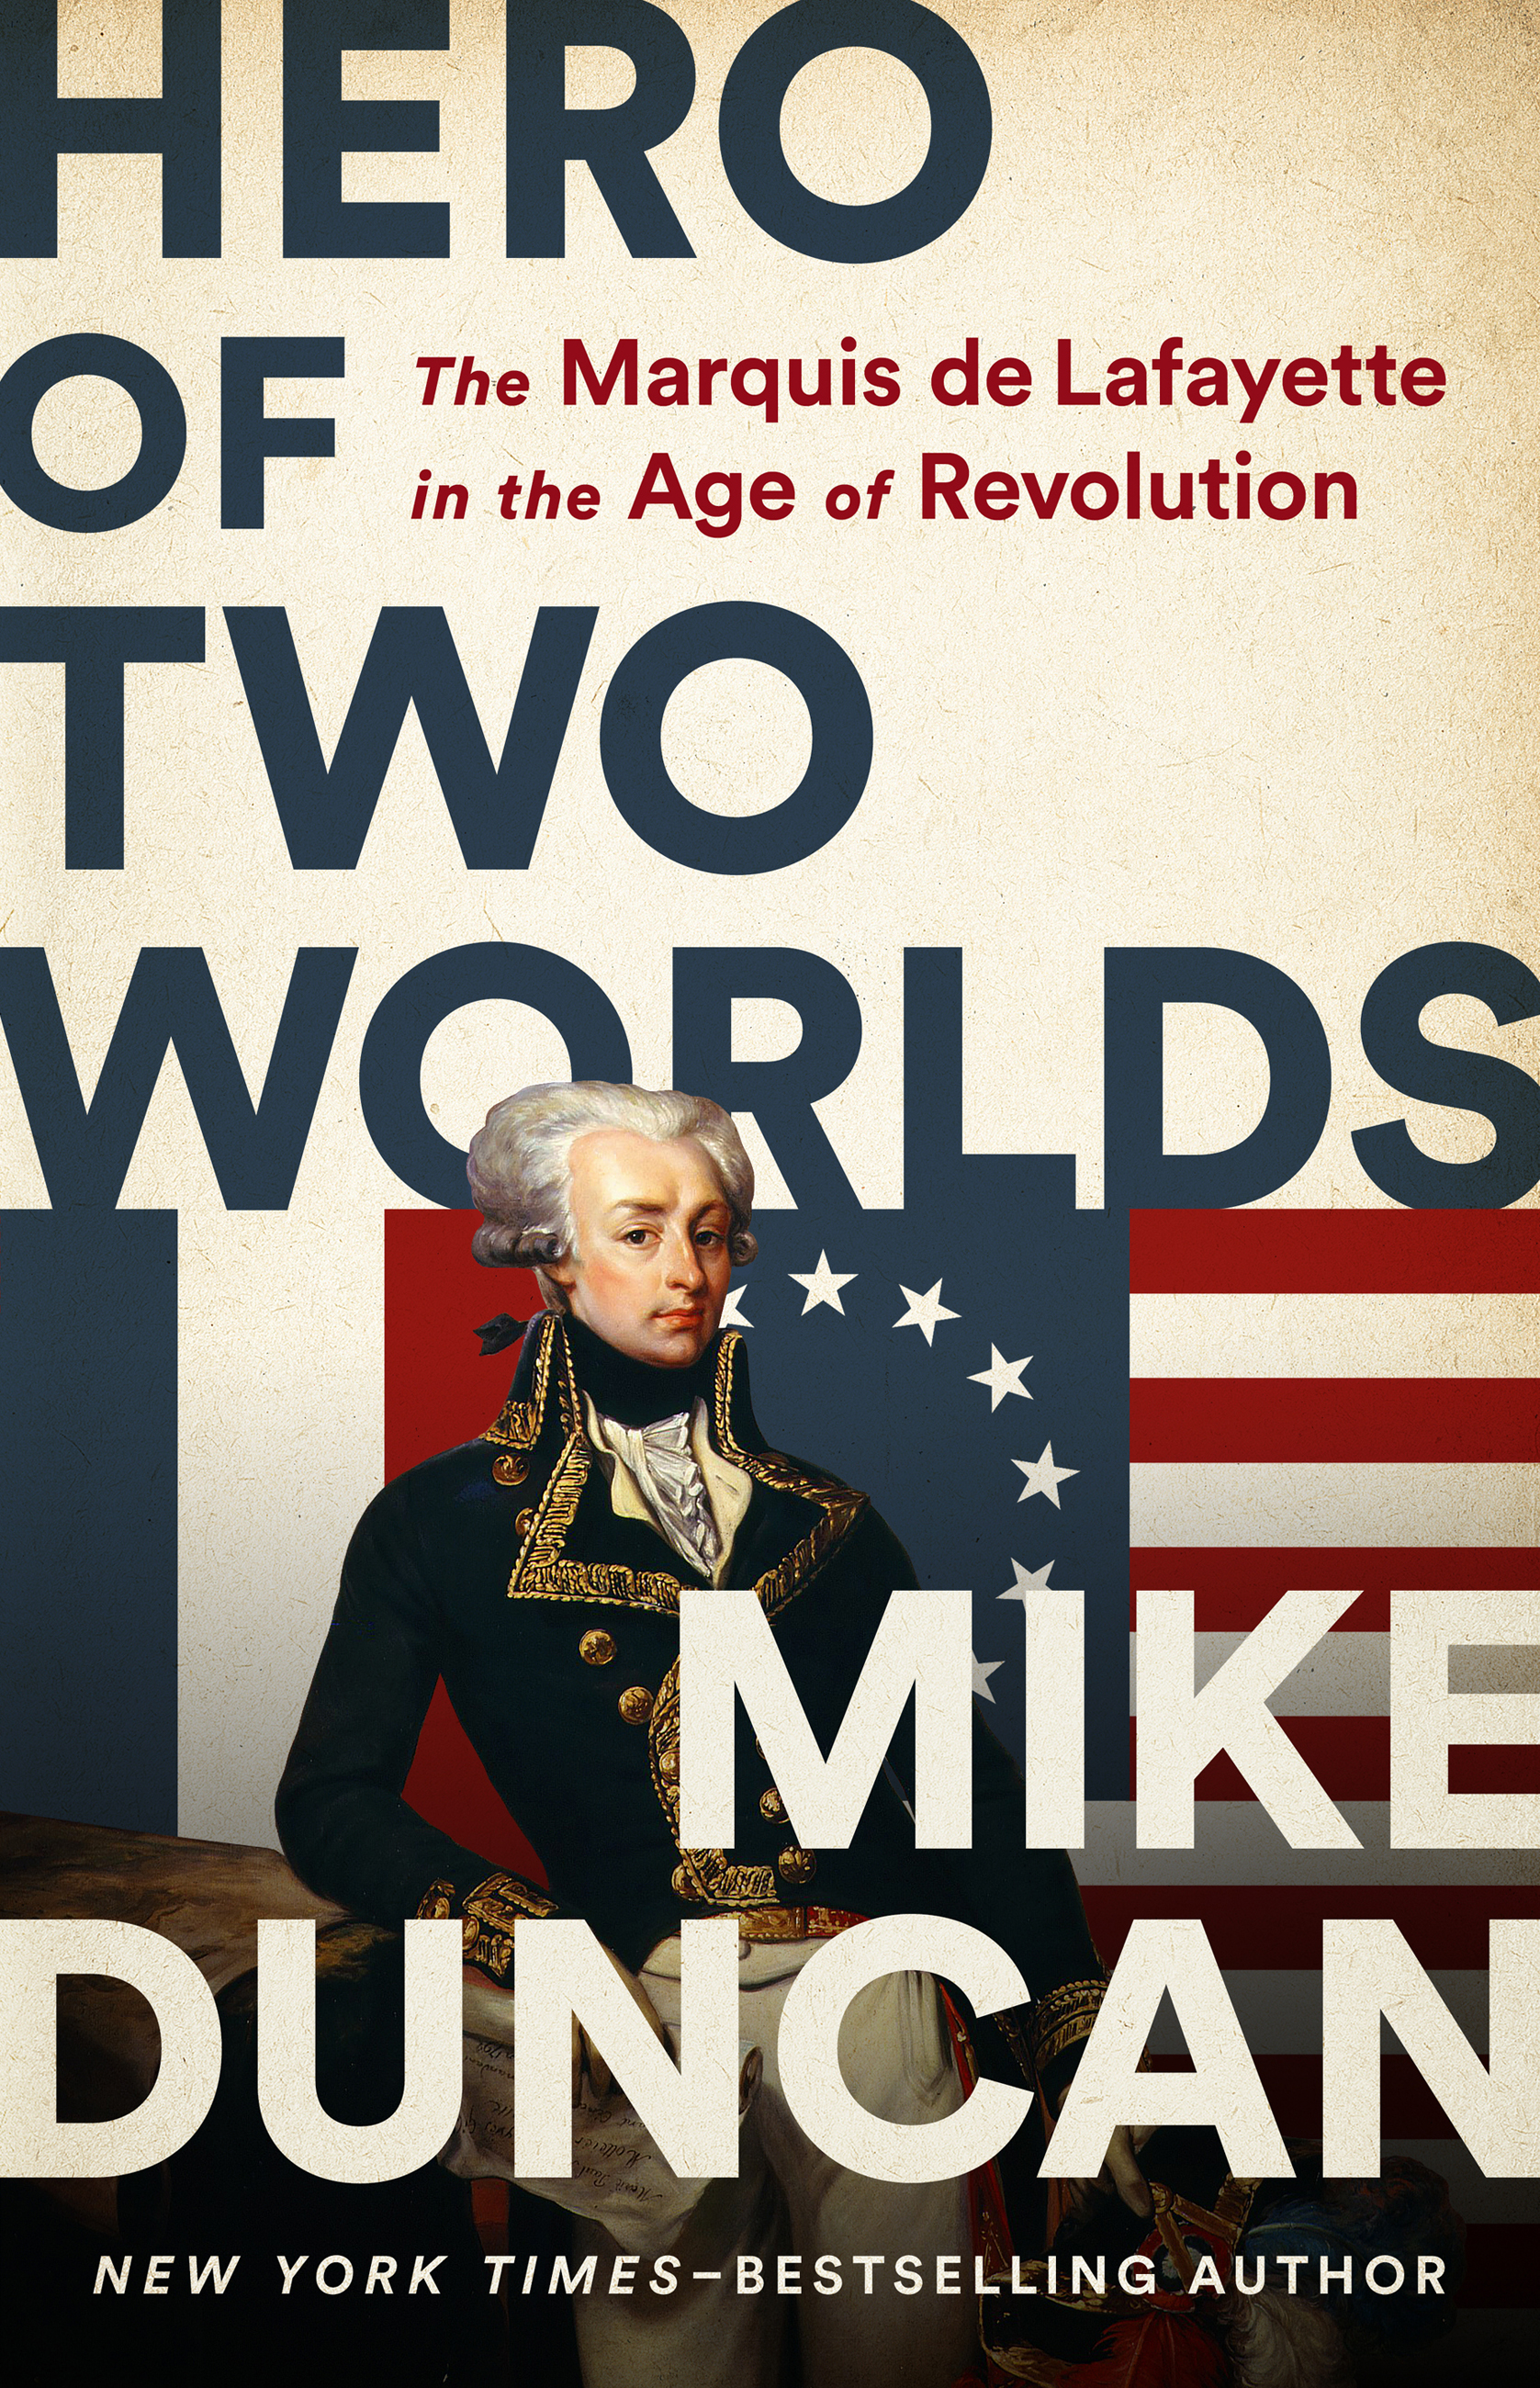 Hero of Two Worlds The Marquis de Lafayette in the Age of Revolution